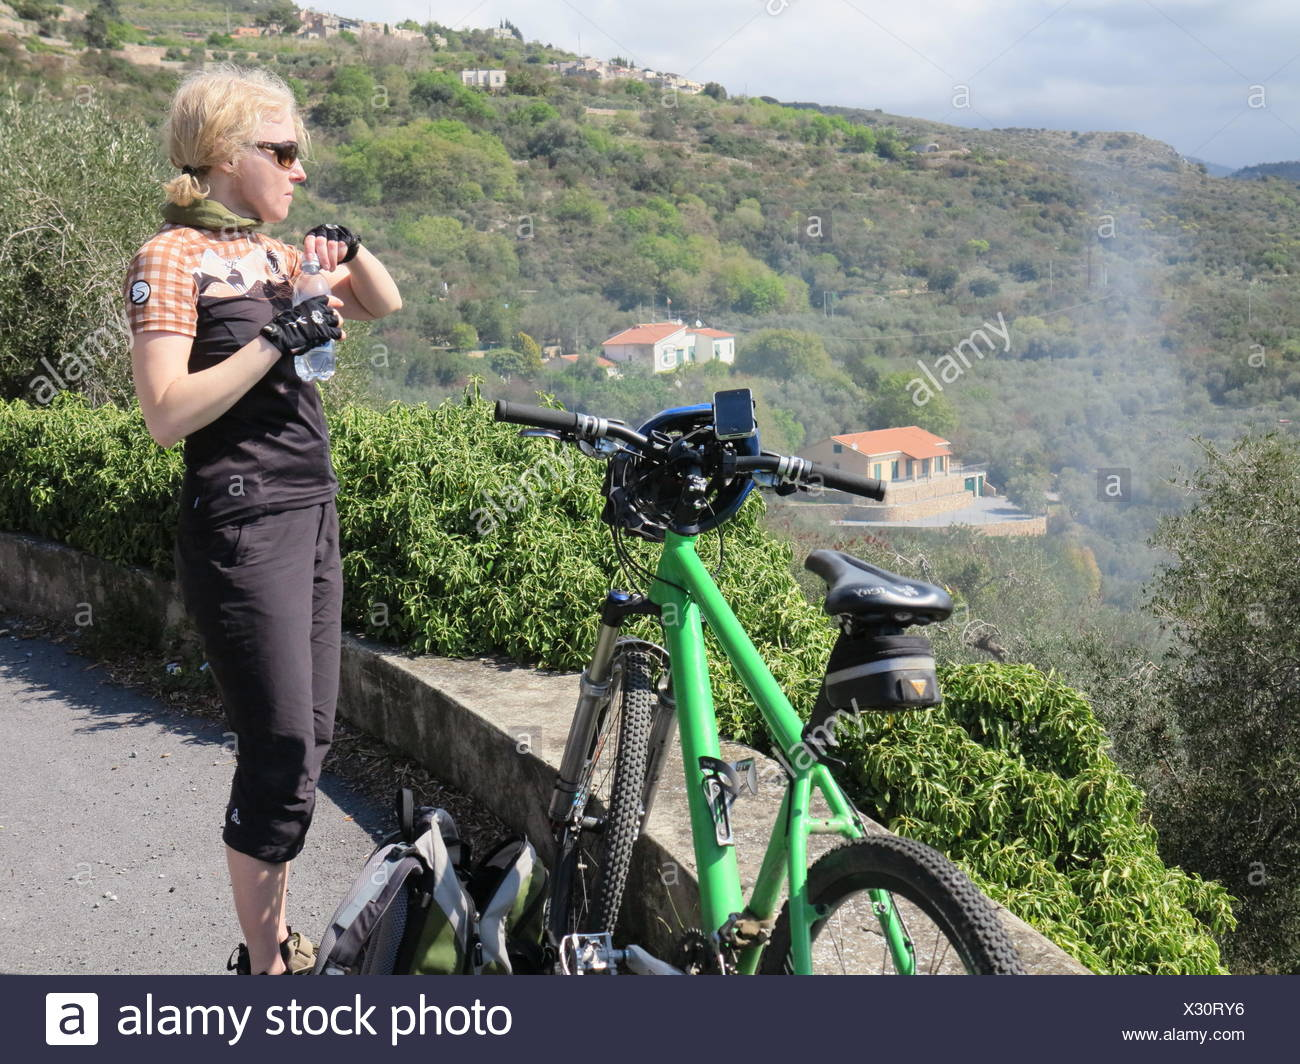 Woman taking a refreshment from a water bottle during a mountain bike ride on the Italian Riviera, Liguria, Italy, Europe - Stock Image